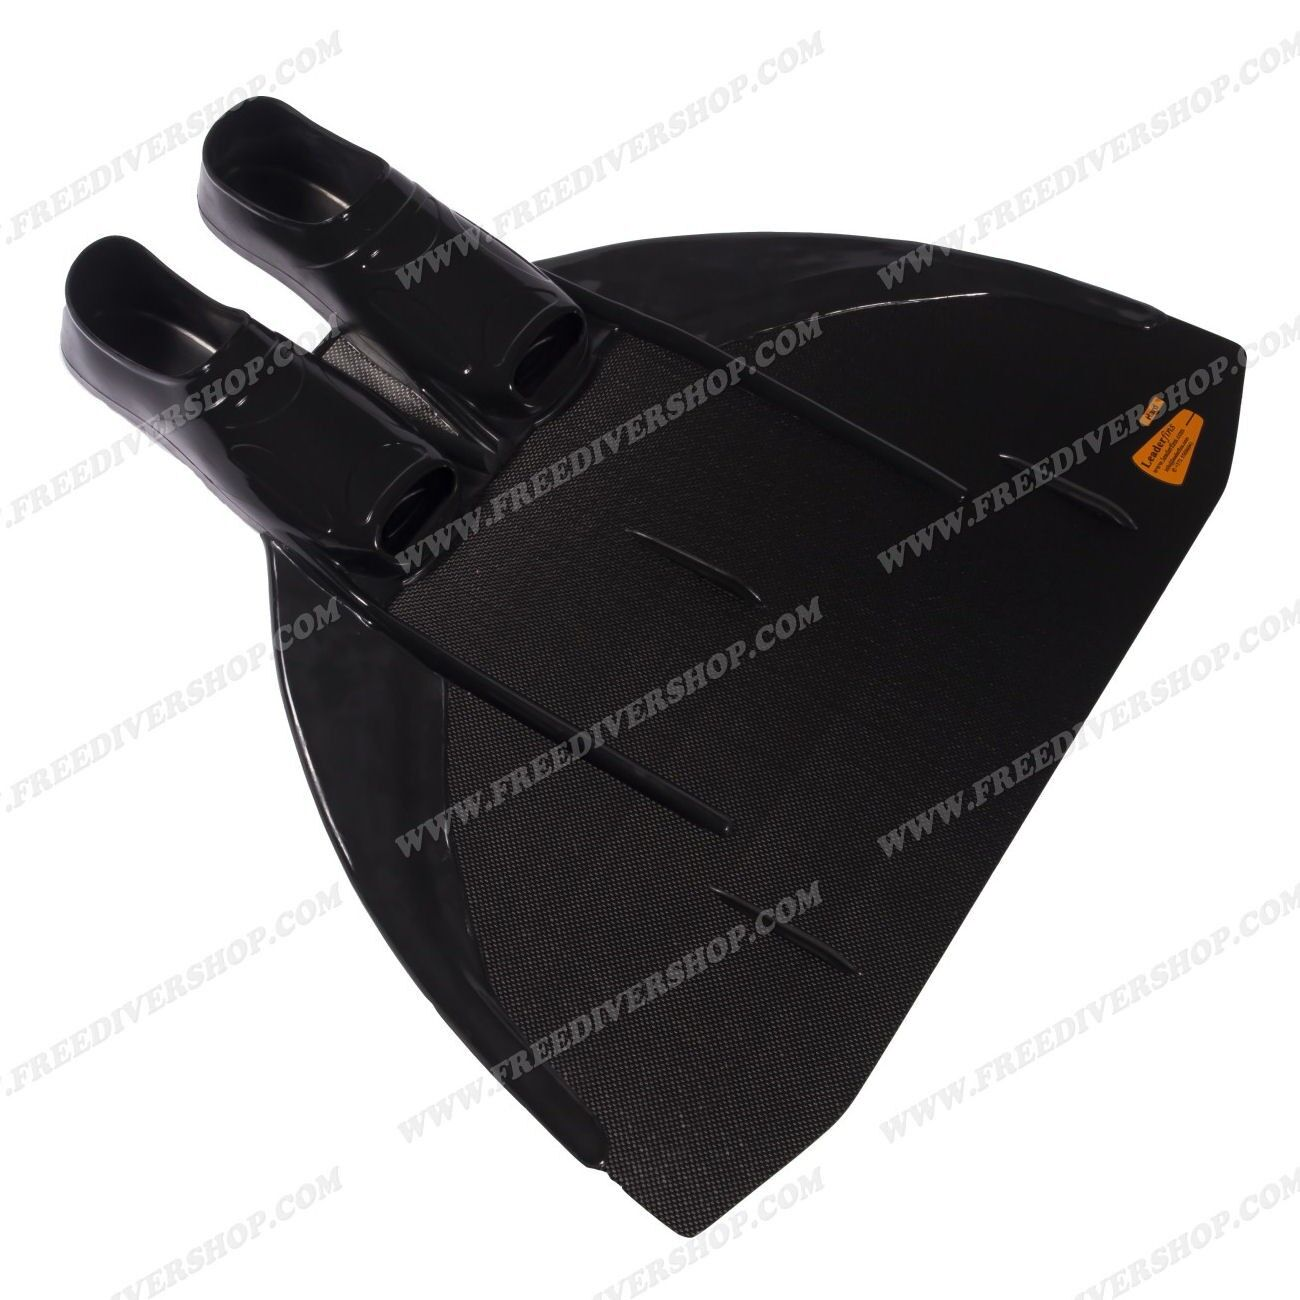 Leaderfins Freediving  LF Carbon Monofin - ALL SIZES  save 60% discount and fast shipping worldwide